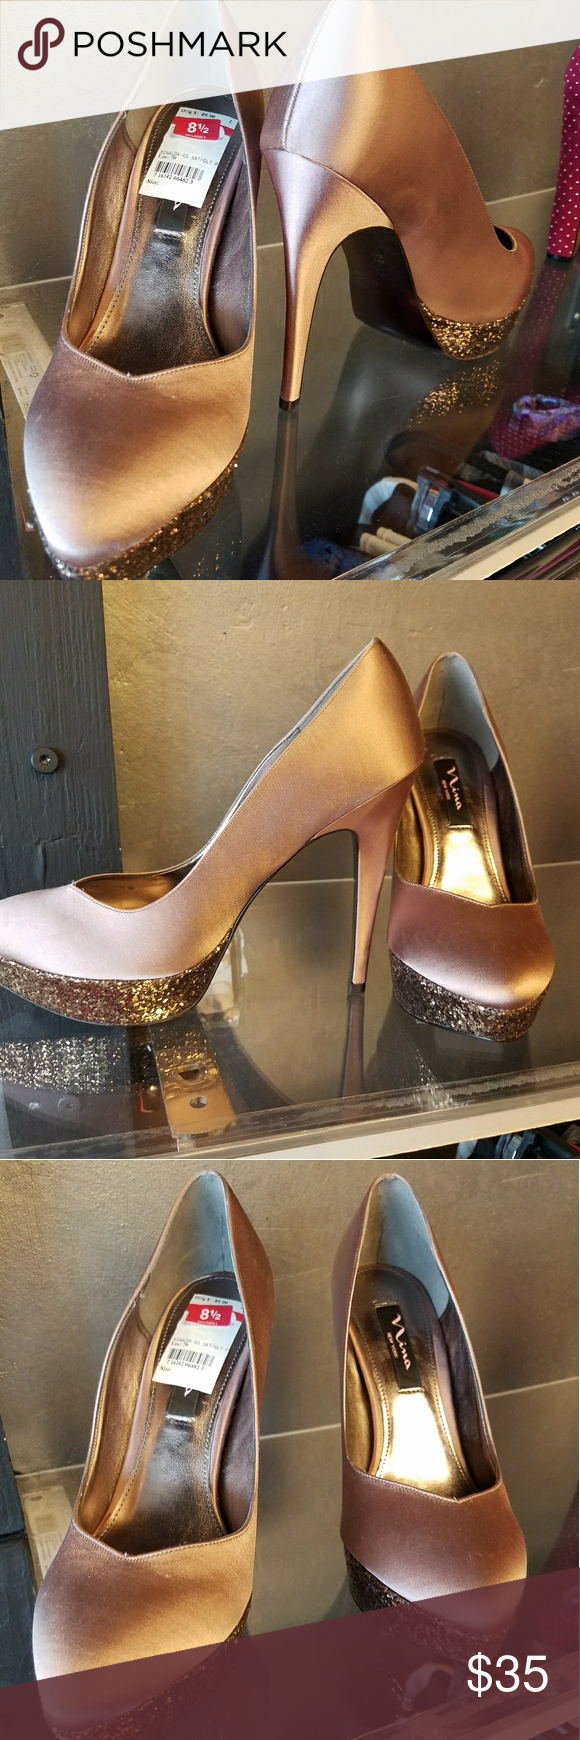 New Ni?a New York Heels Size 8.5 Brand New Beautiful Ni?a New York Sequence Heels Nina Shoes Heels